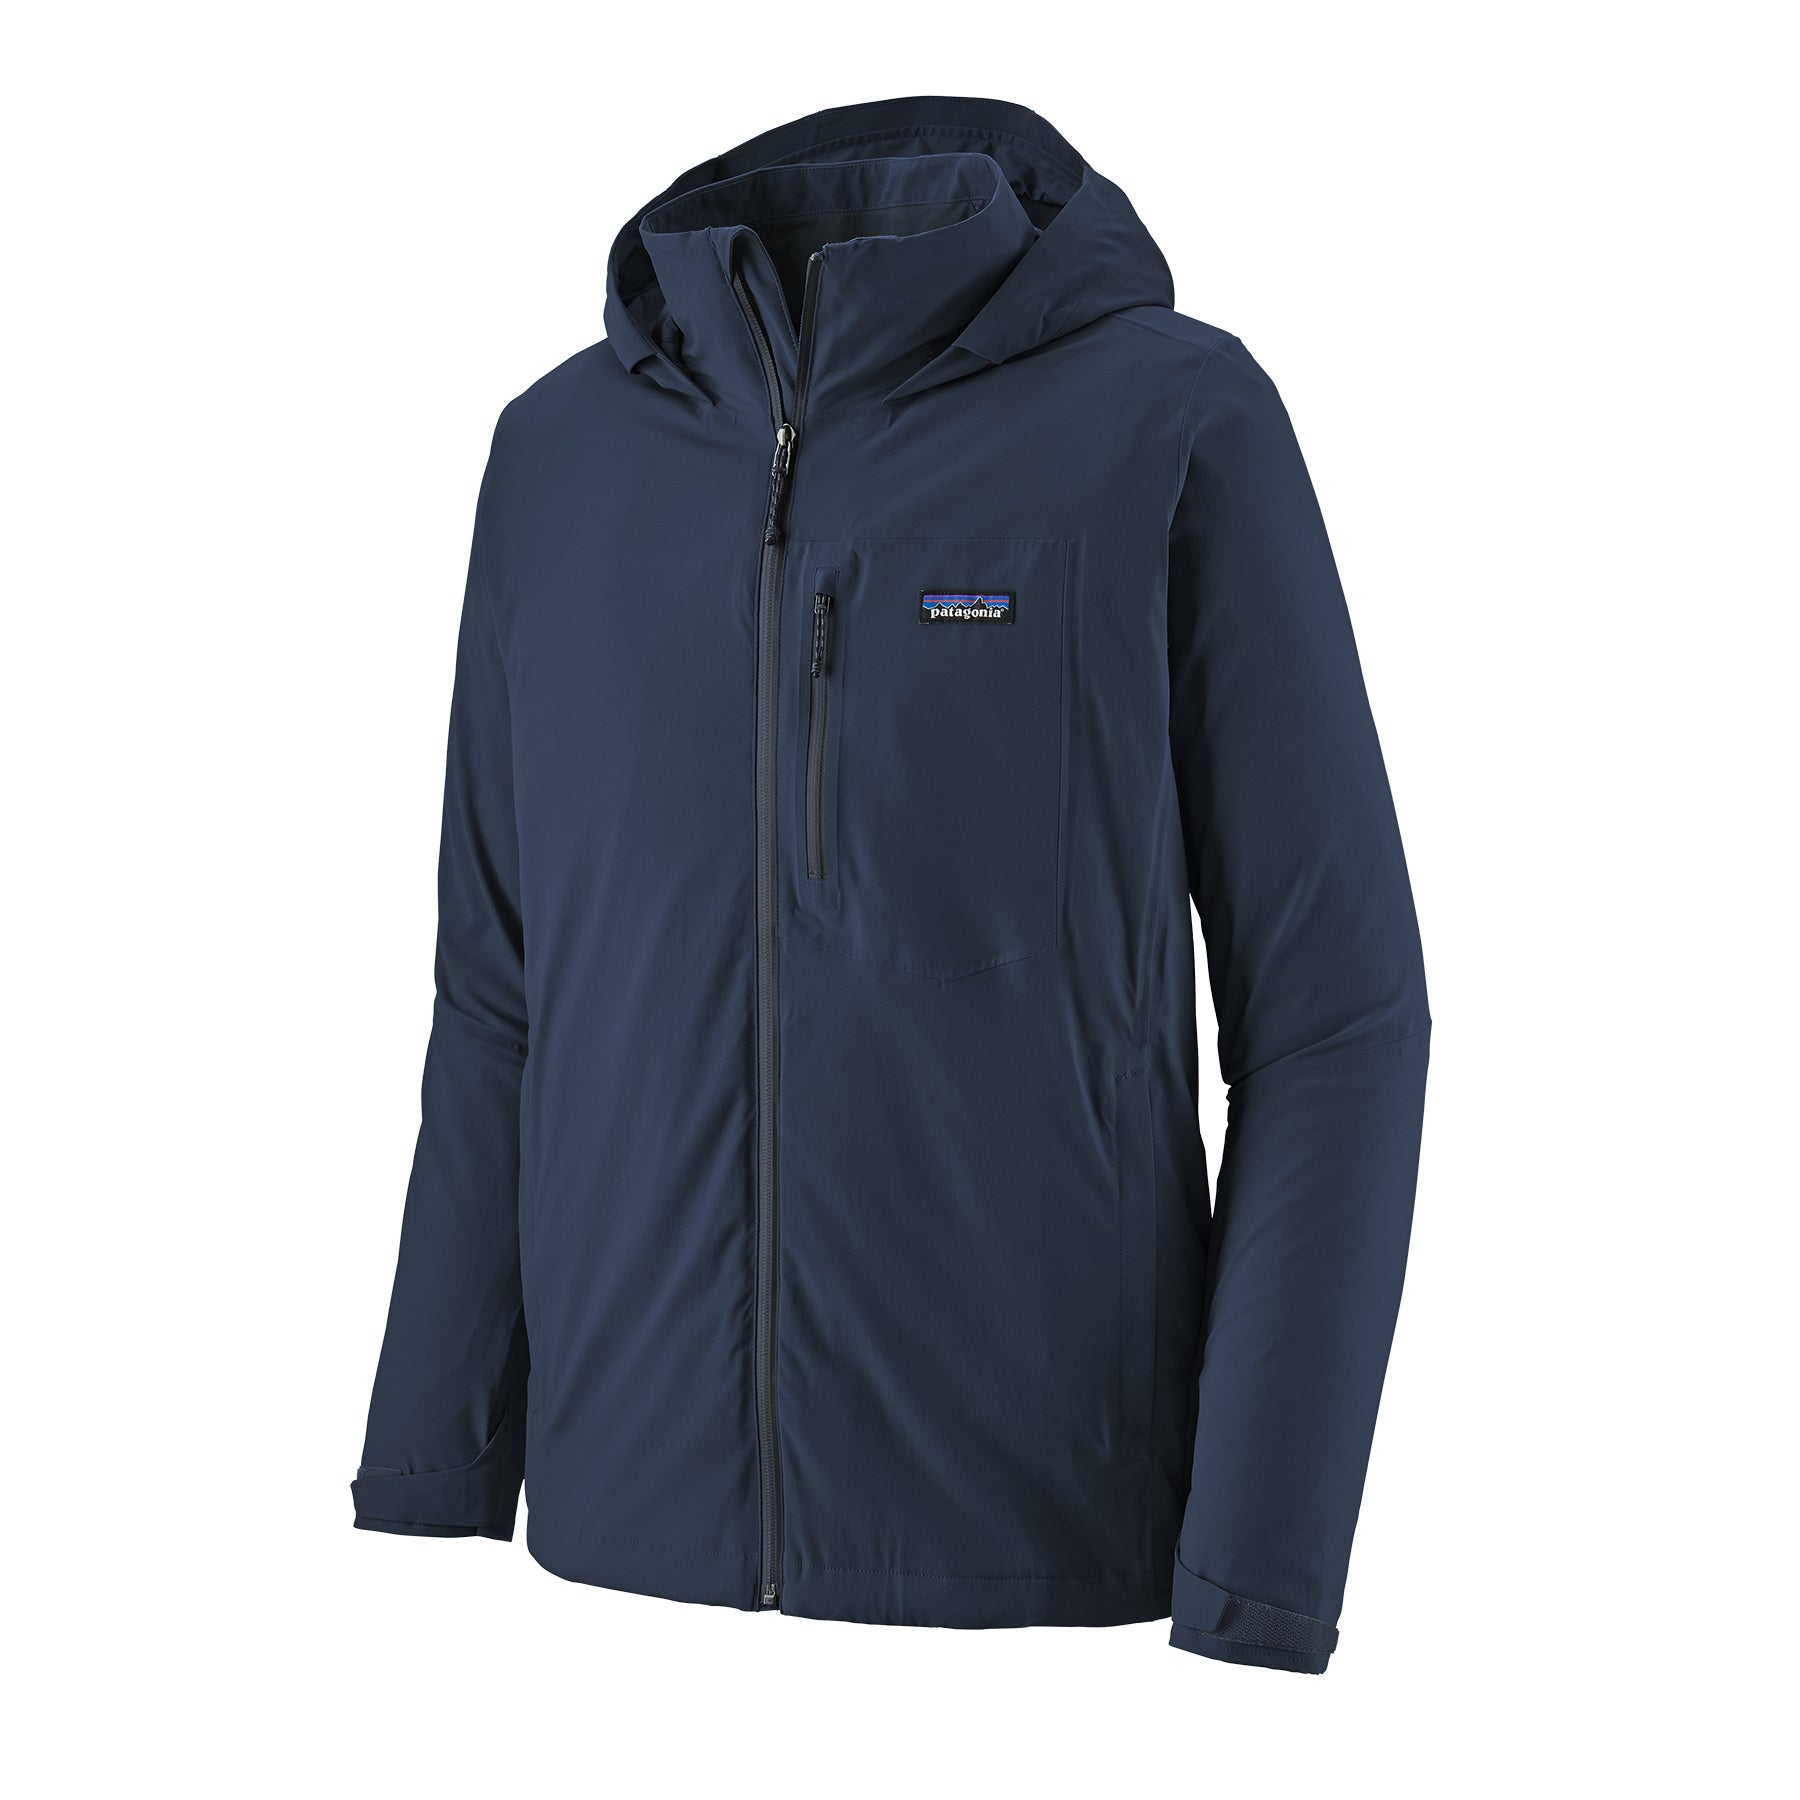 Patagonia Quandary Waterproof Jacket for Men in Neo Navy